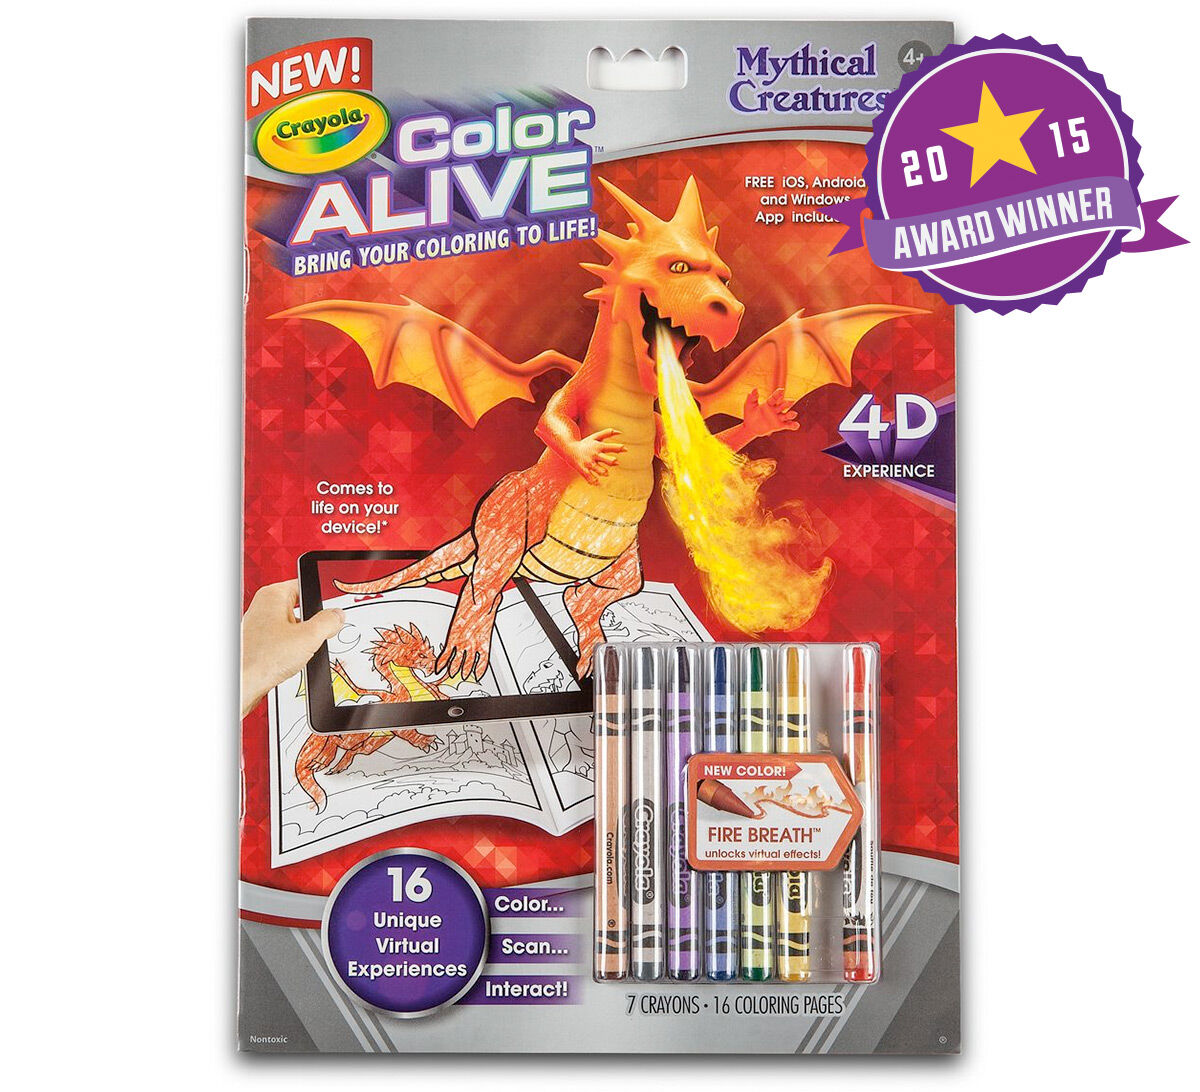 color alive mythical creatures - Crayola Color Alive Special Pages